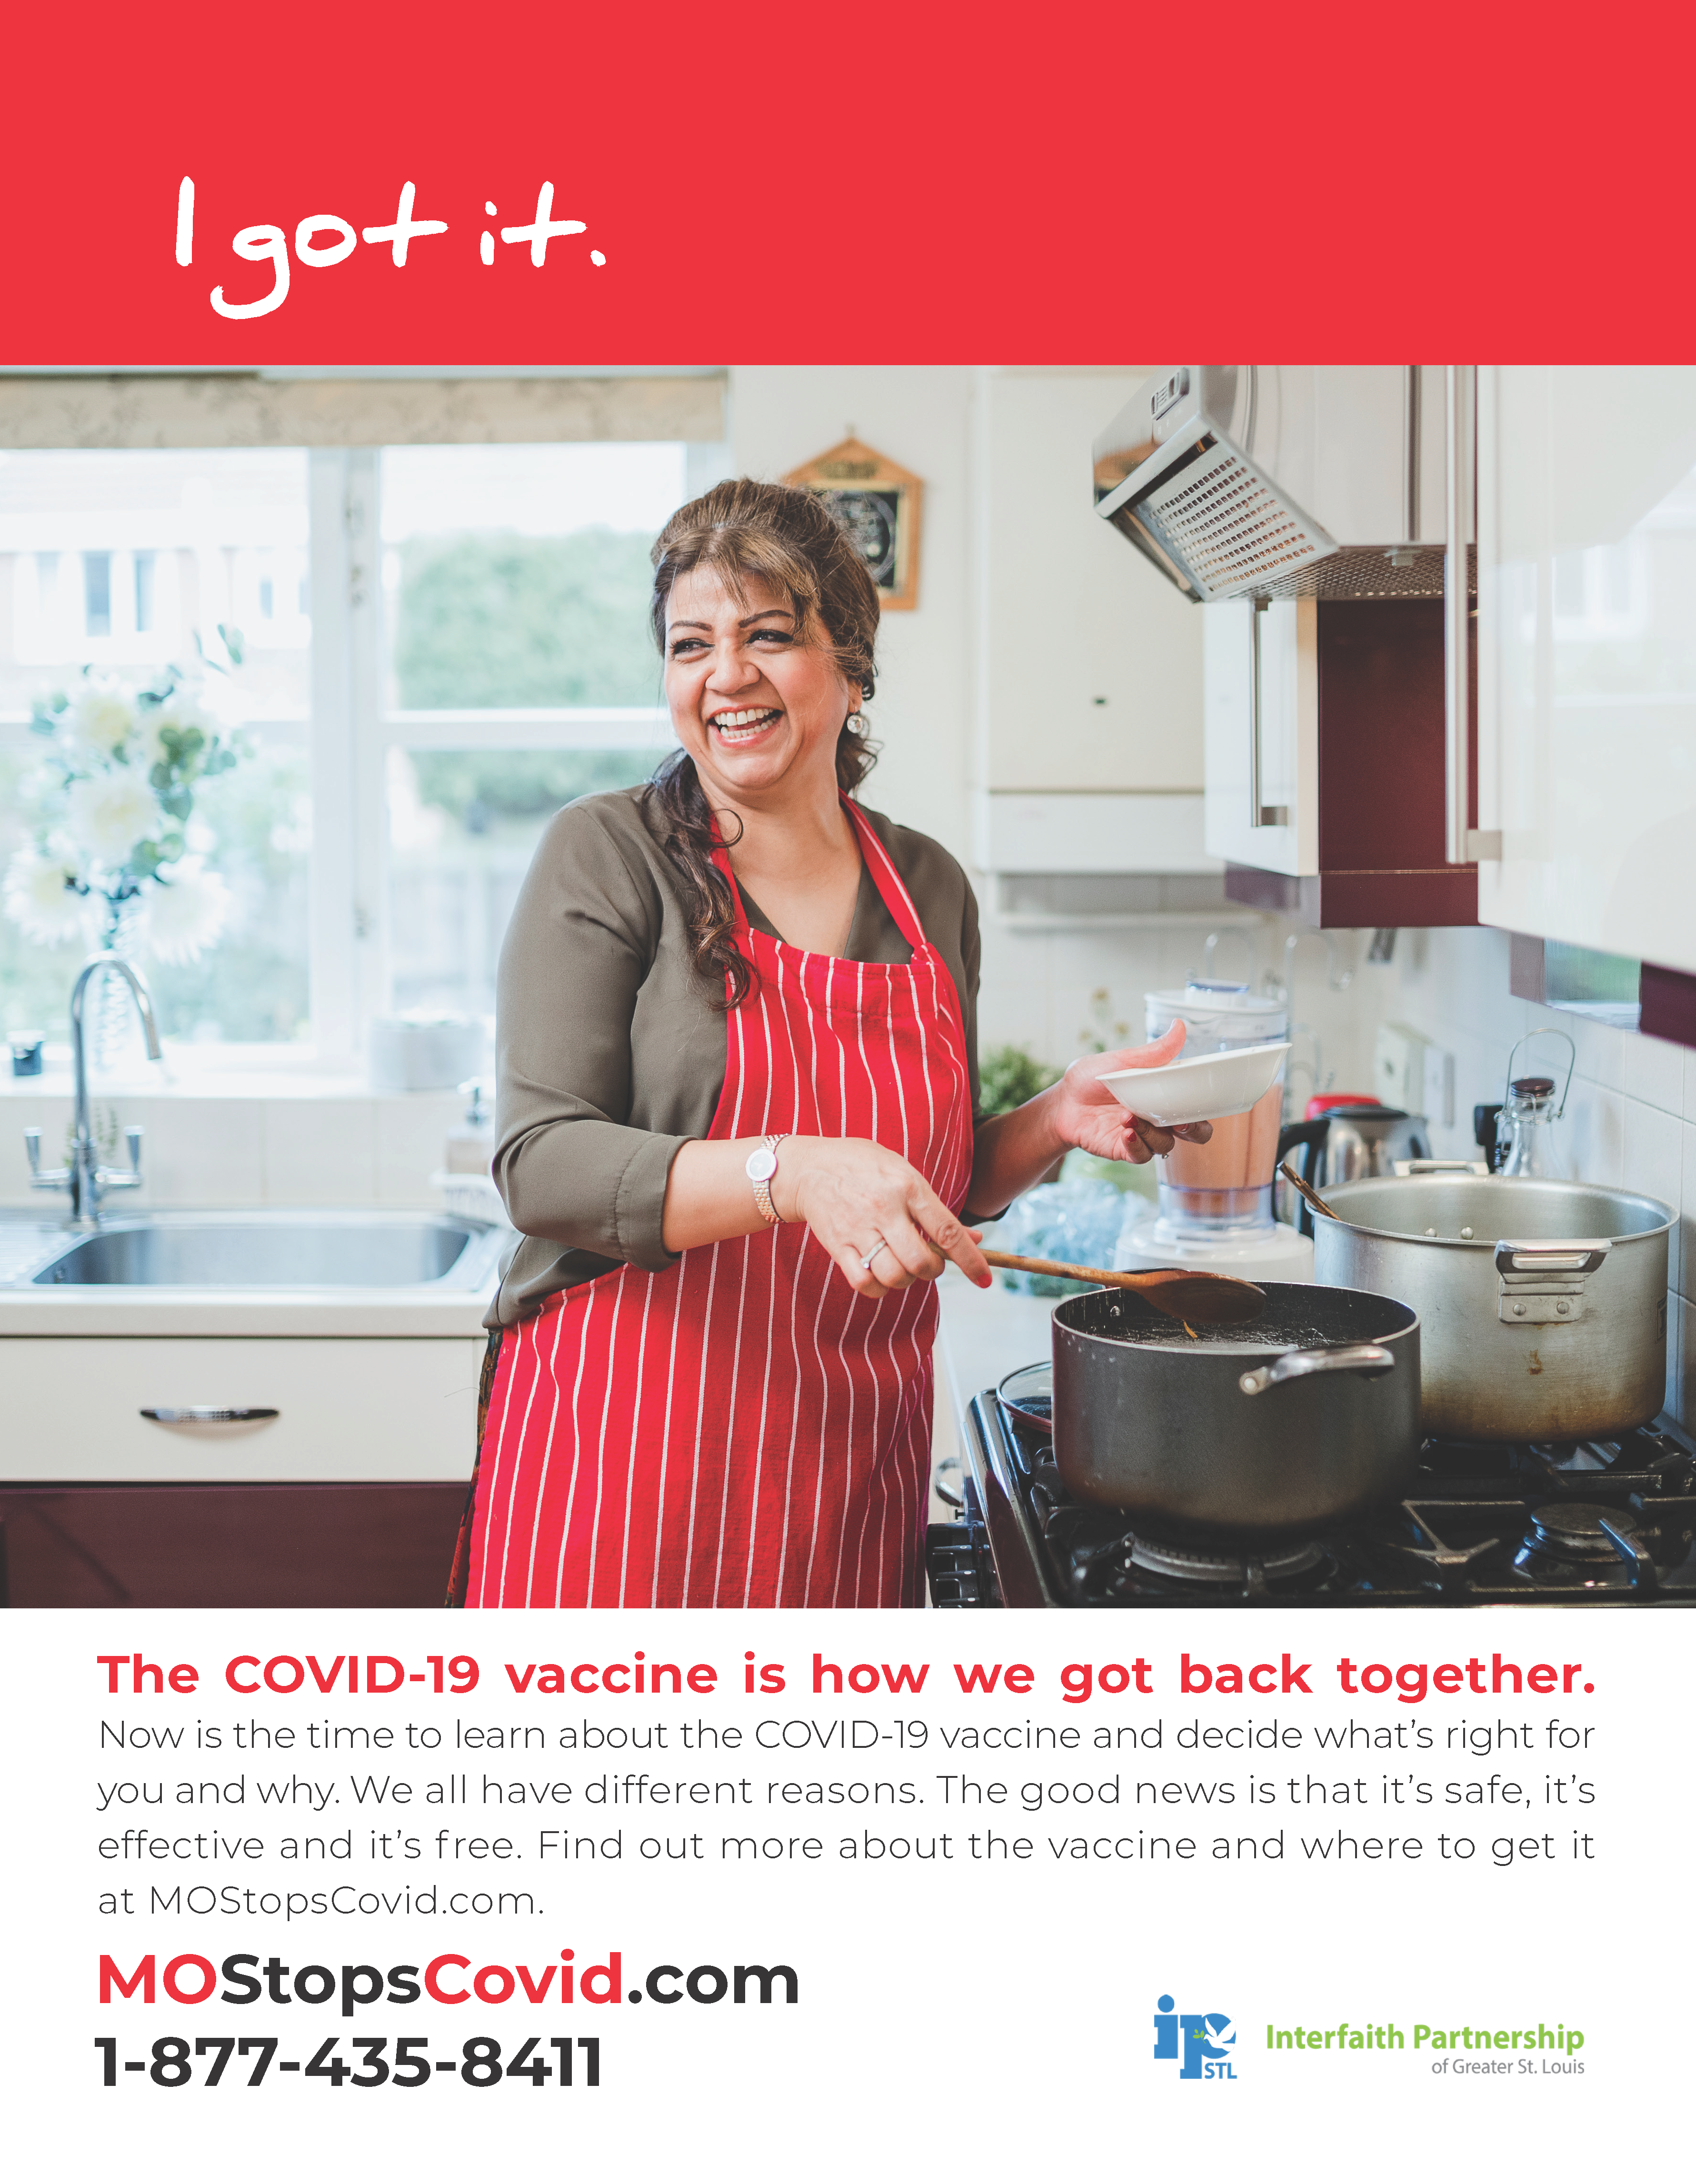 """Photograph of a woman cooking at her kitchen stove, smiling. Above, the text reads """"I got it"""" over a red border. Below, the text reads, """"The COVID-19 vaccine is how we got back together. Now is the time to learn about the COVID-19 vaccine and decide what's right for you and why. We all have different reasons. The good news is that it's safe, it's effective and it's free. FInd out more about the vaccine and where to get it at MOStopsCovid.com or by calling 1-877-435-8411. Courtesy of Interfaith Partnership of Greater St. Louis"""